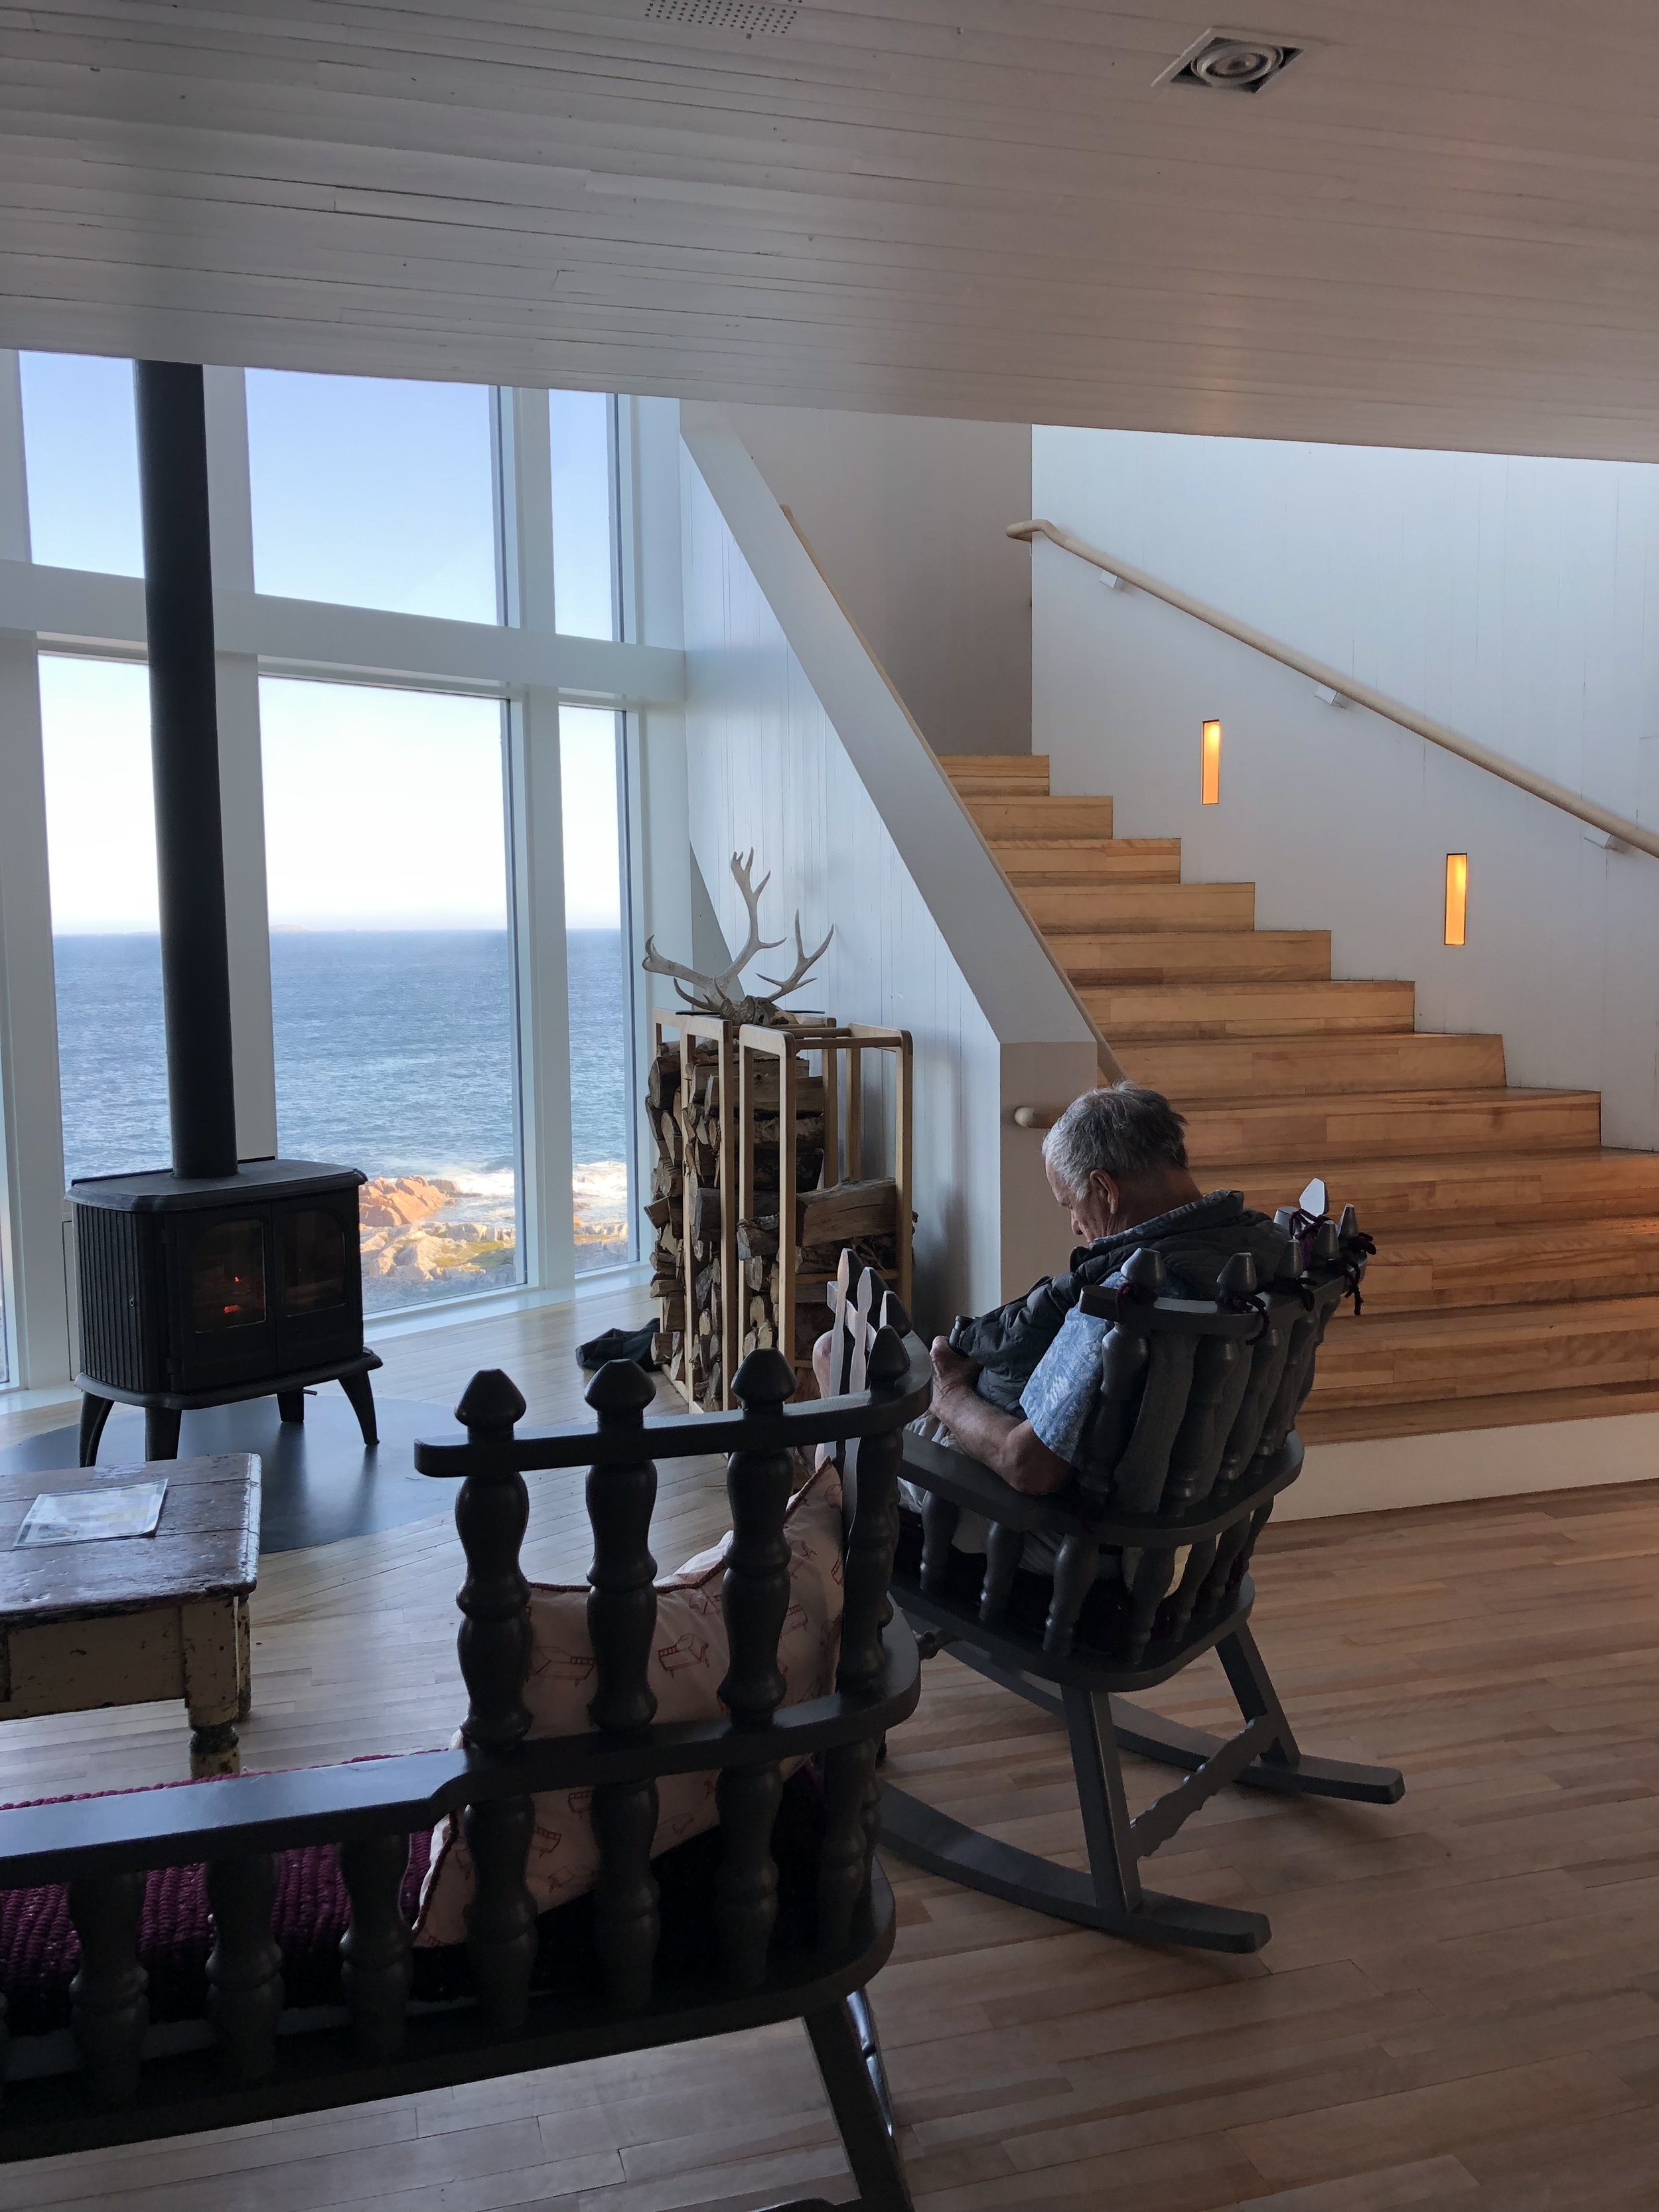 If you answered YES to these questions, Fogo Island is for you. Contact us to arrange your stay, and let's get you to this breathtaking destination! - www.kristenmeckemtravel.com